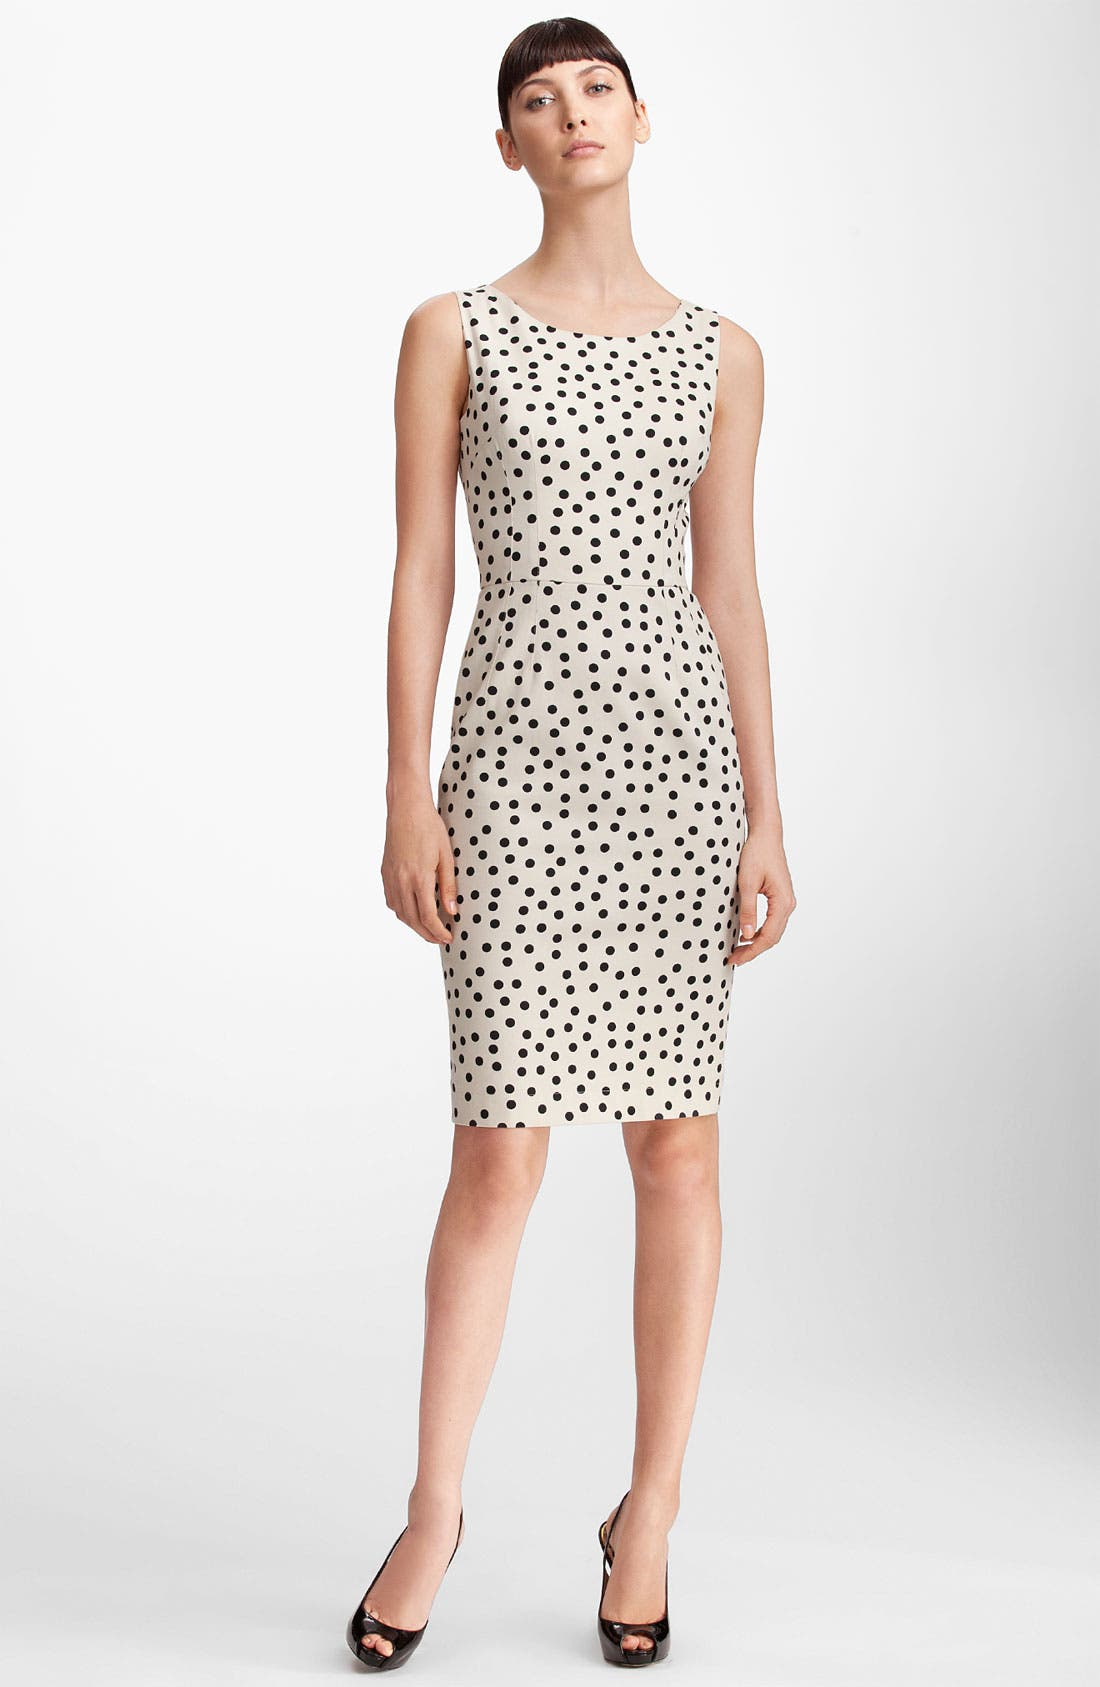 Alternate Image 1 Selected - Dolce&Gabbana Polka Dot Stretch Cotton Dress